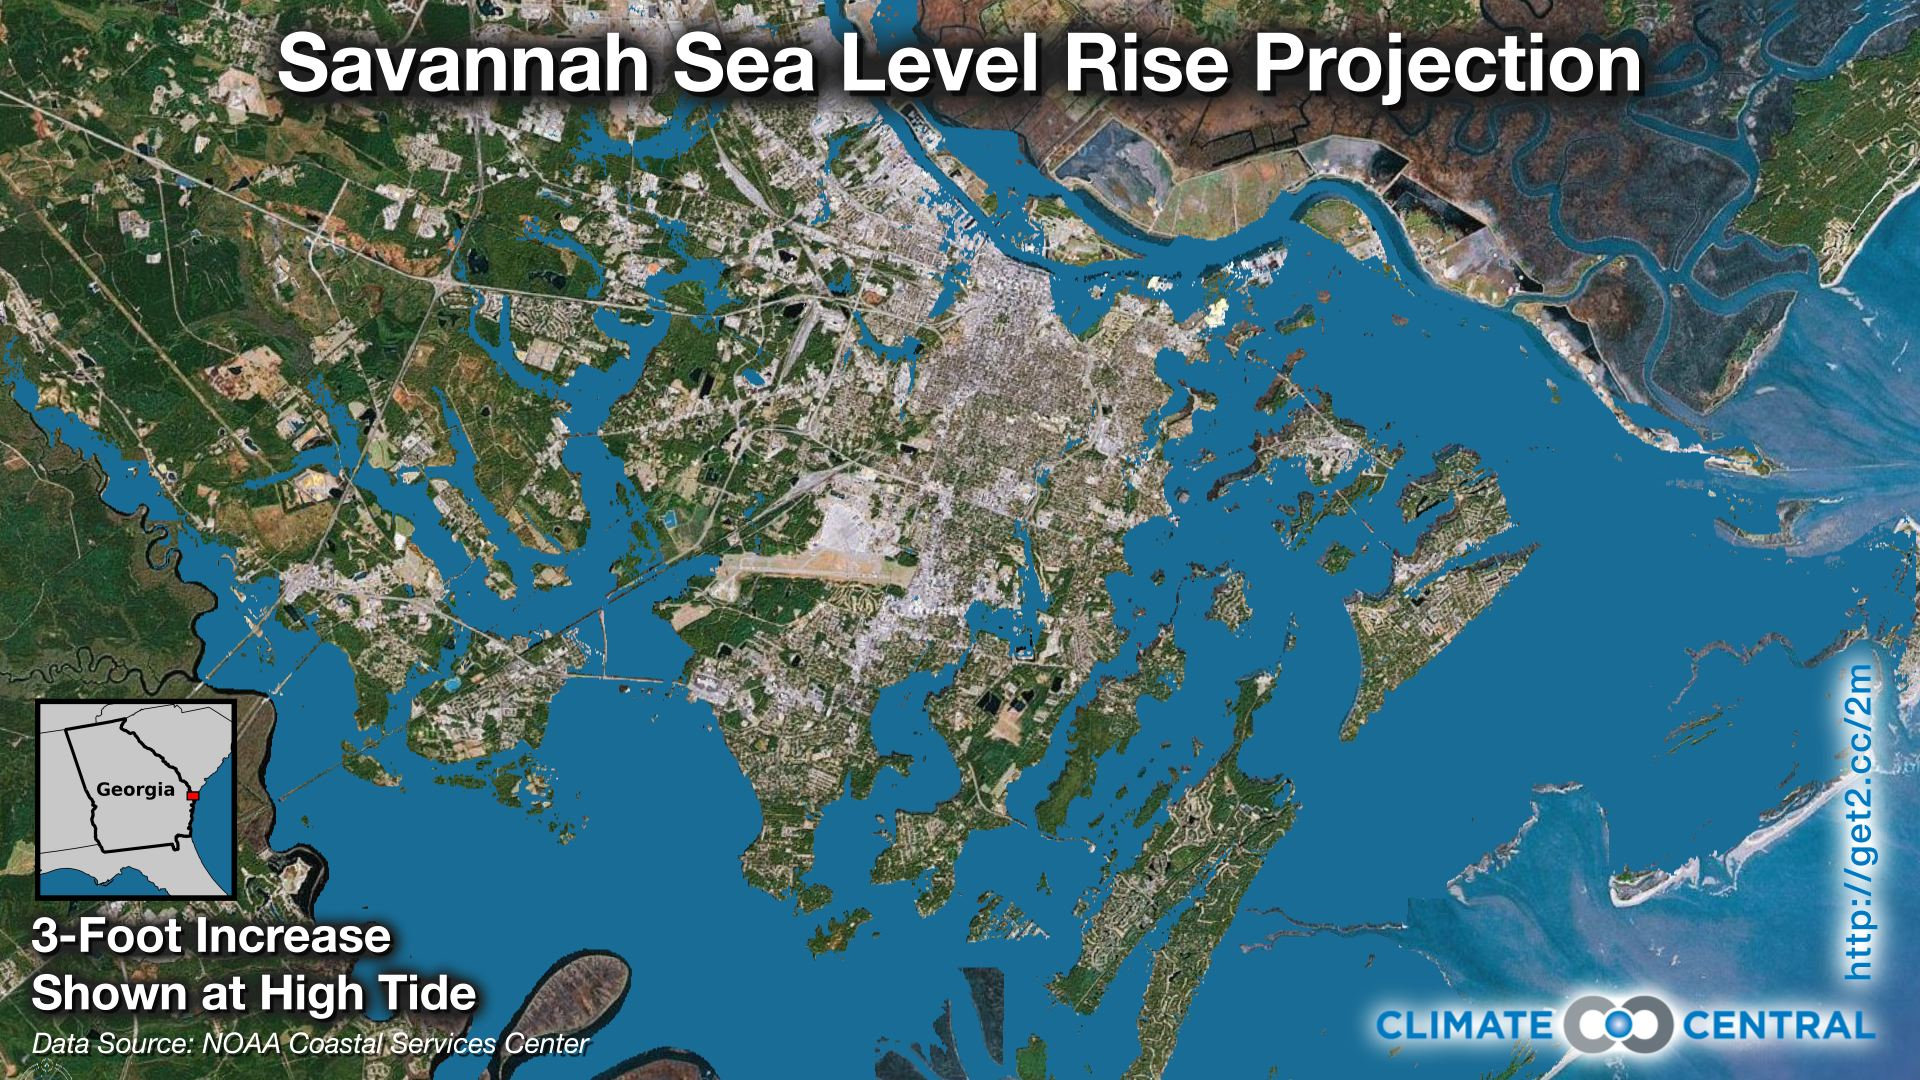 Savannah Sea Level Rise Projection Climate Central - Water rising map